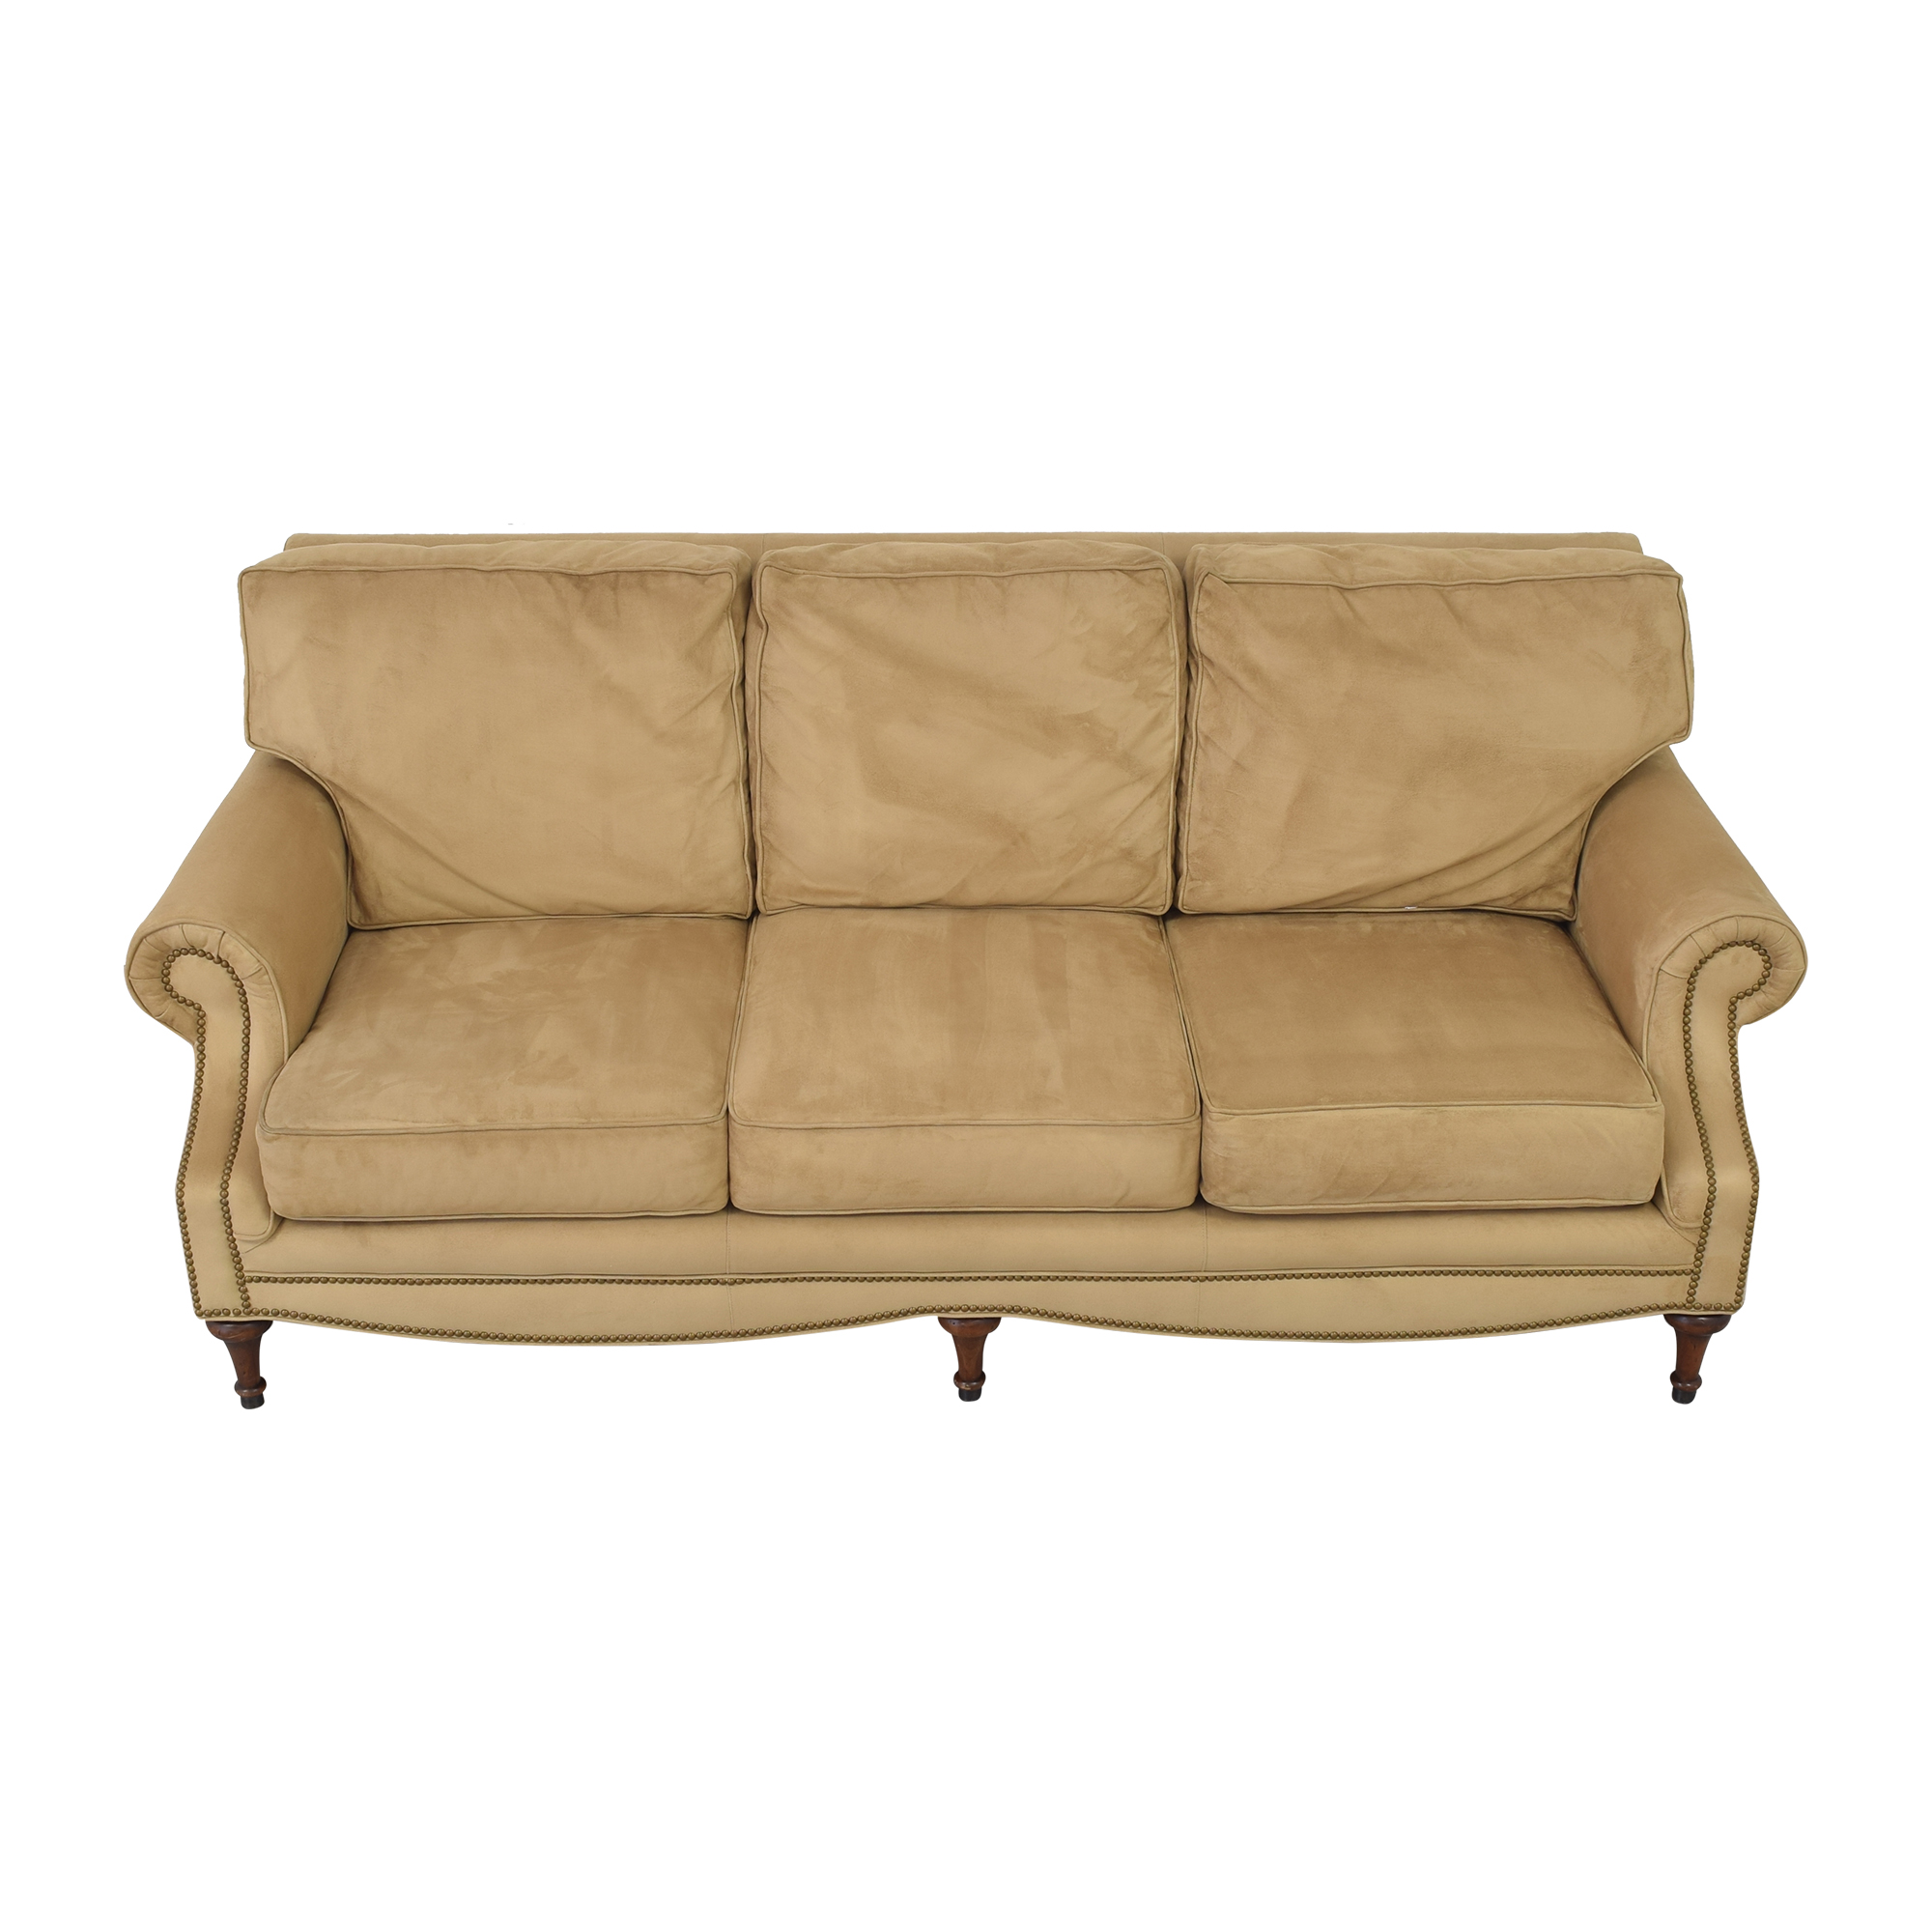 Harden Harden Roll Arm Sofa discount